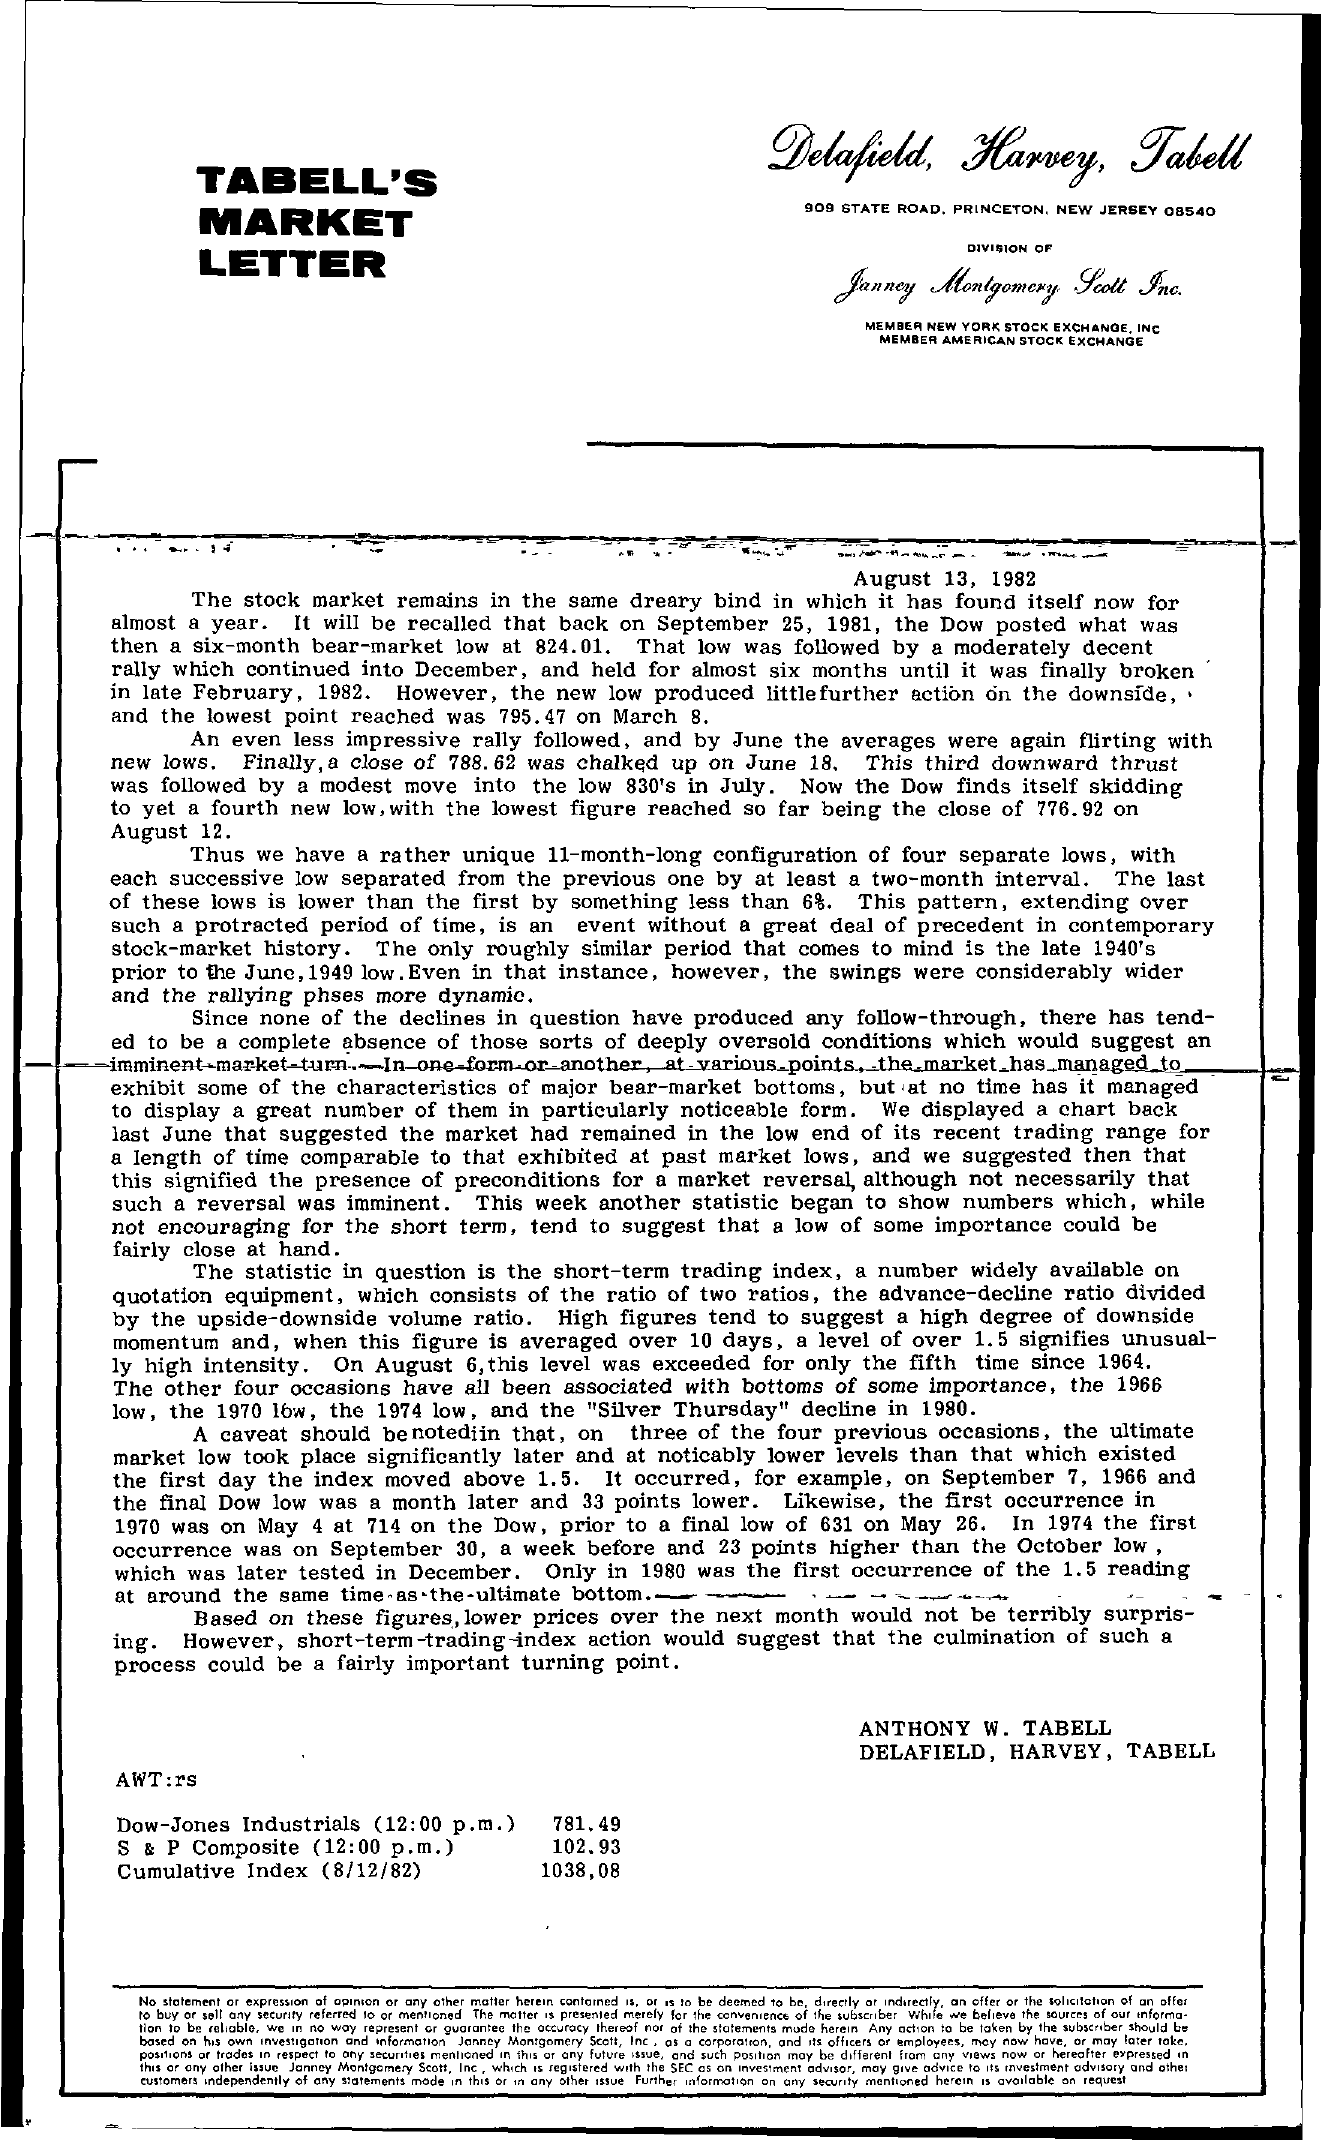 Tabell's Market Letter - August 13, 1982